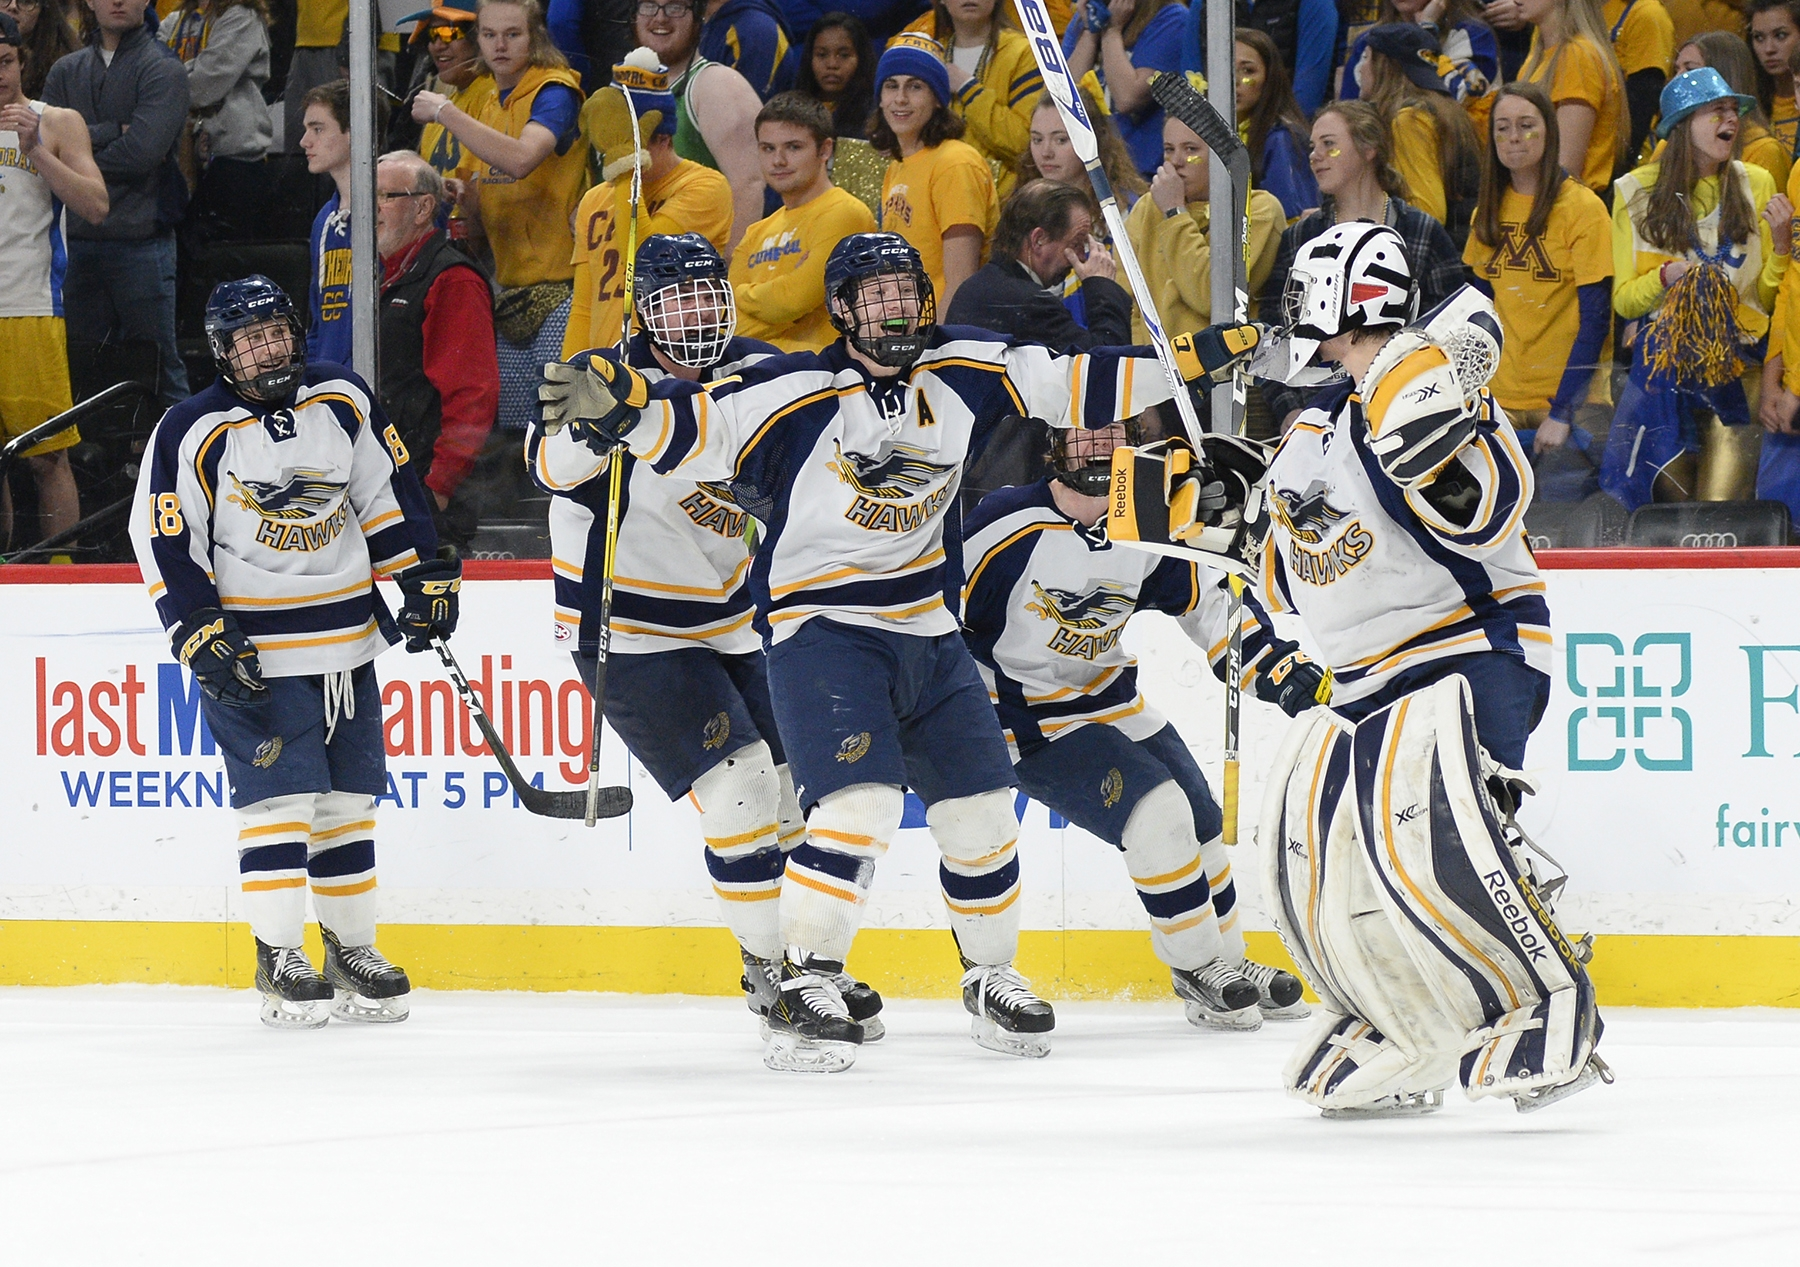 Hermantown's Ryan Sandelin celebrates with his teammates after his overtime goal beat St. Cloud Cathedral 6-5. (Photo by Tim Kolehmainen / Breakdown Sports USA)